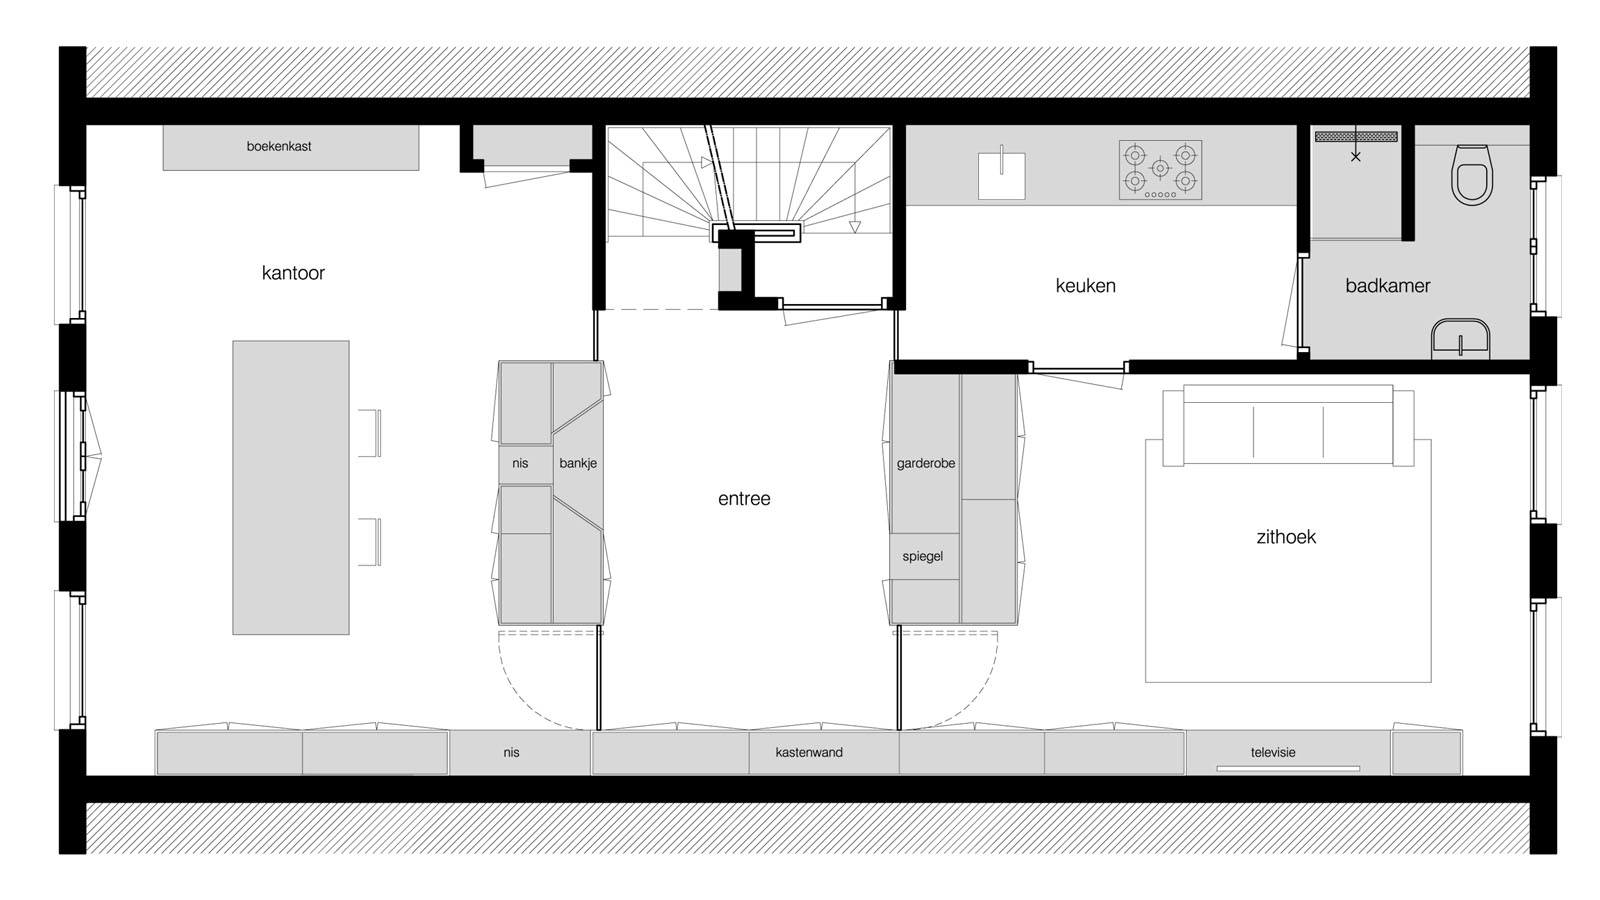 08 architect plattegrond bnla - Huis architect ...